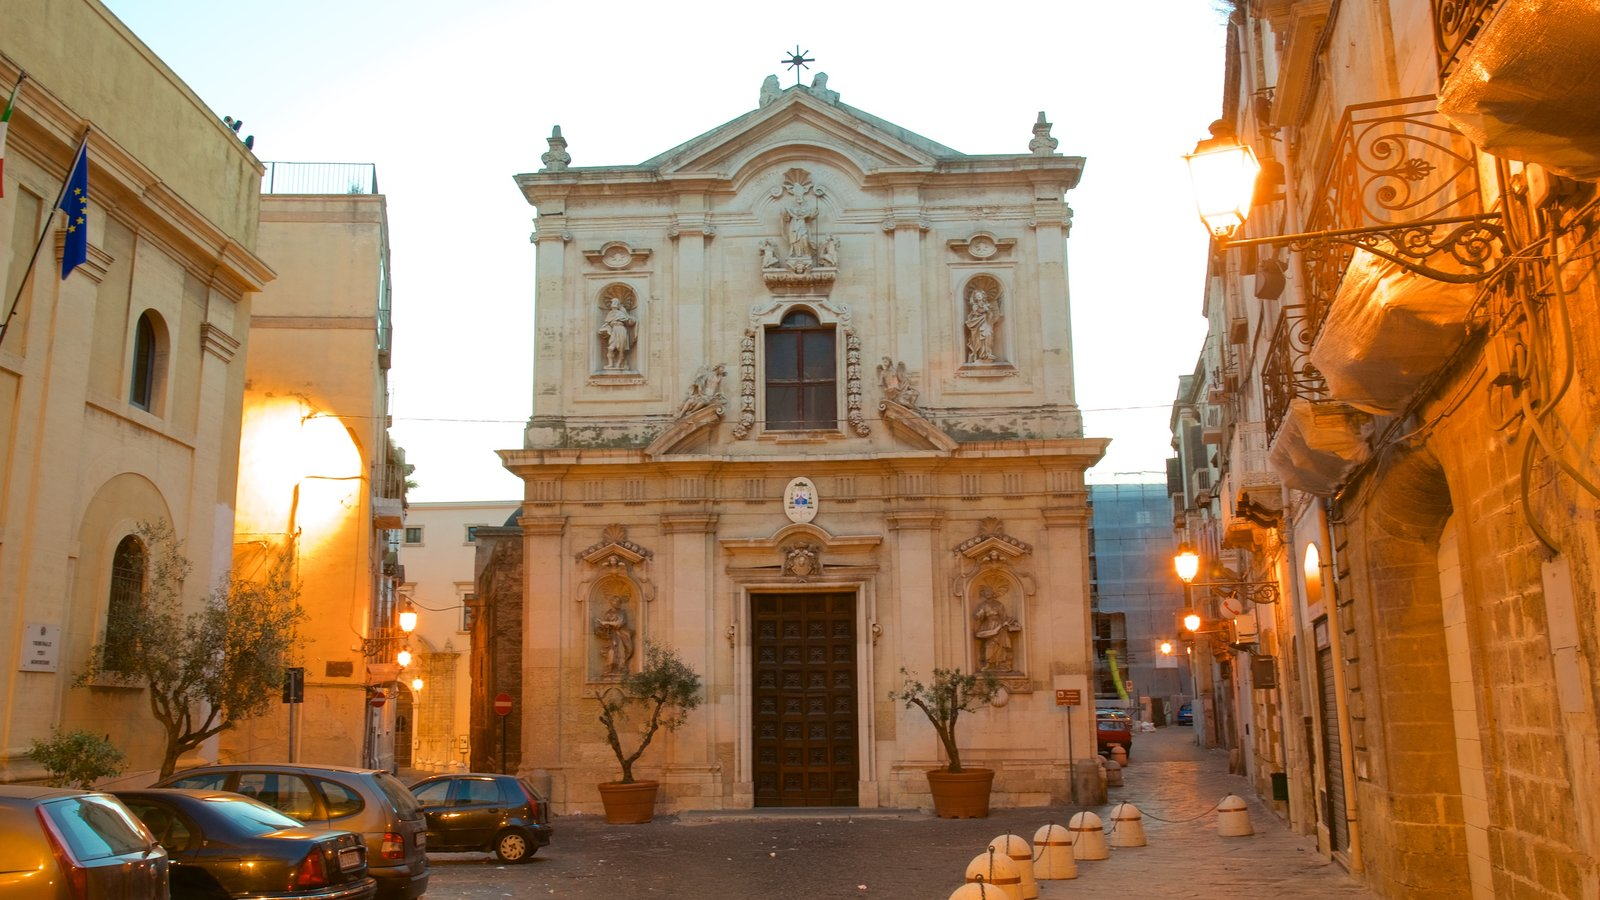 Taranto which includes street scenes, a church or cathedral and heritage architecture